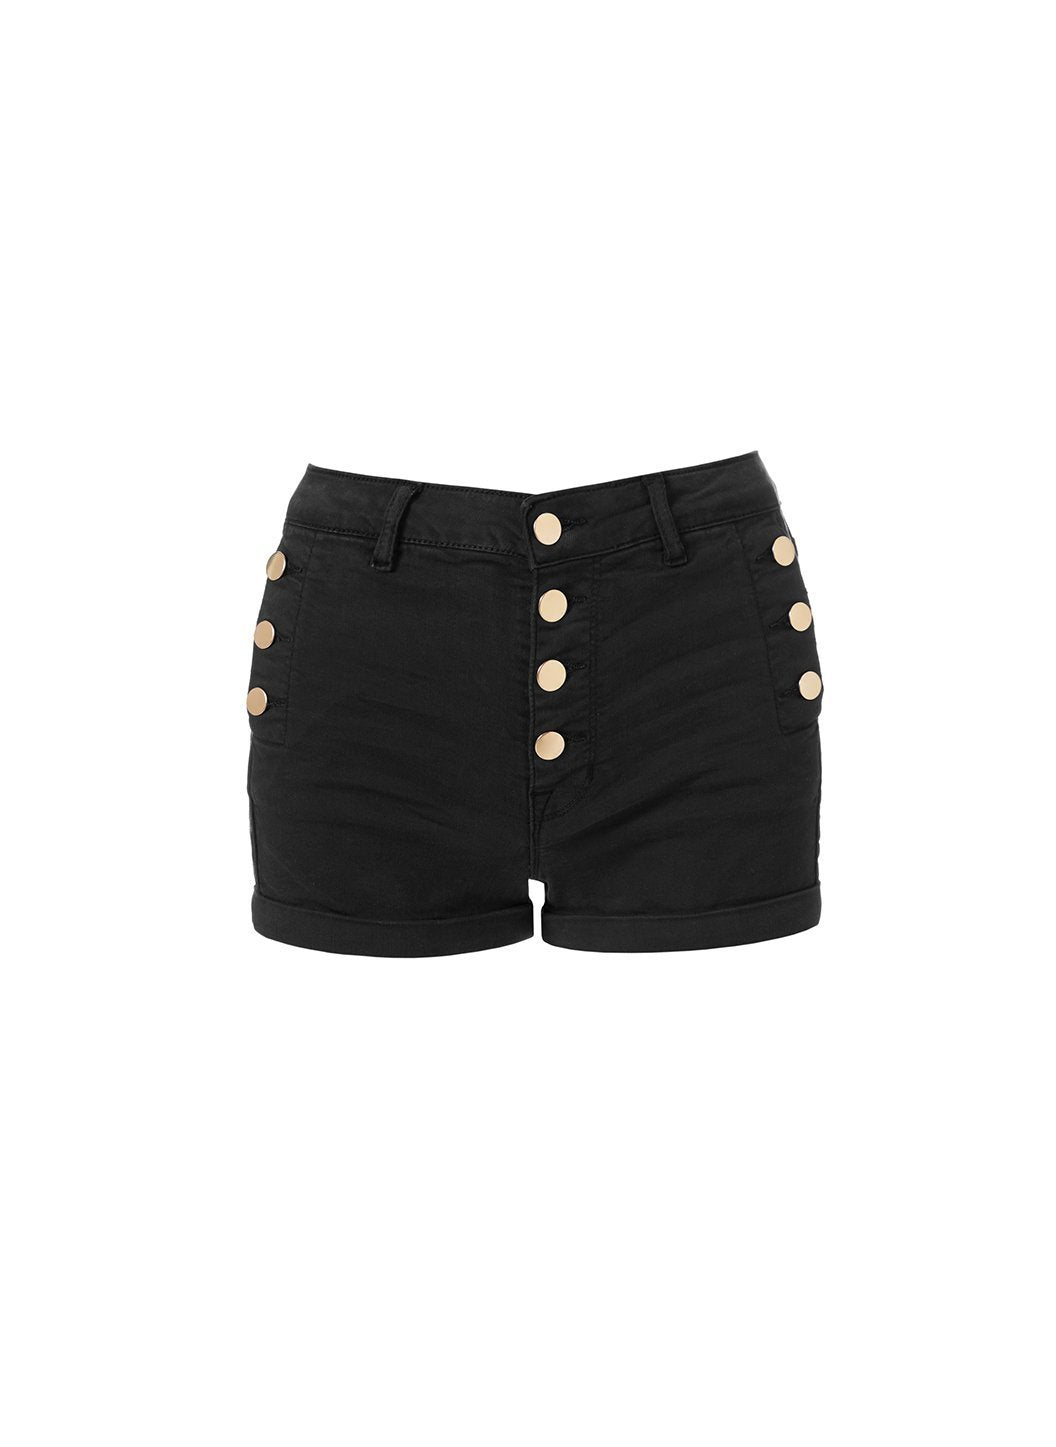 Yanni Black Shorts